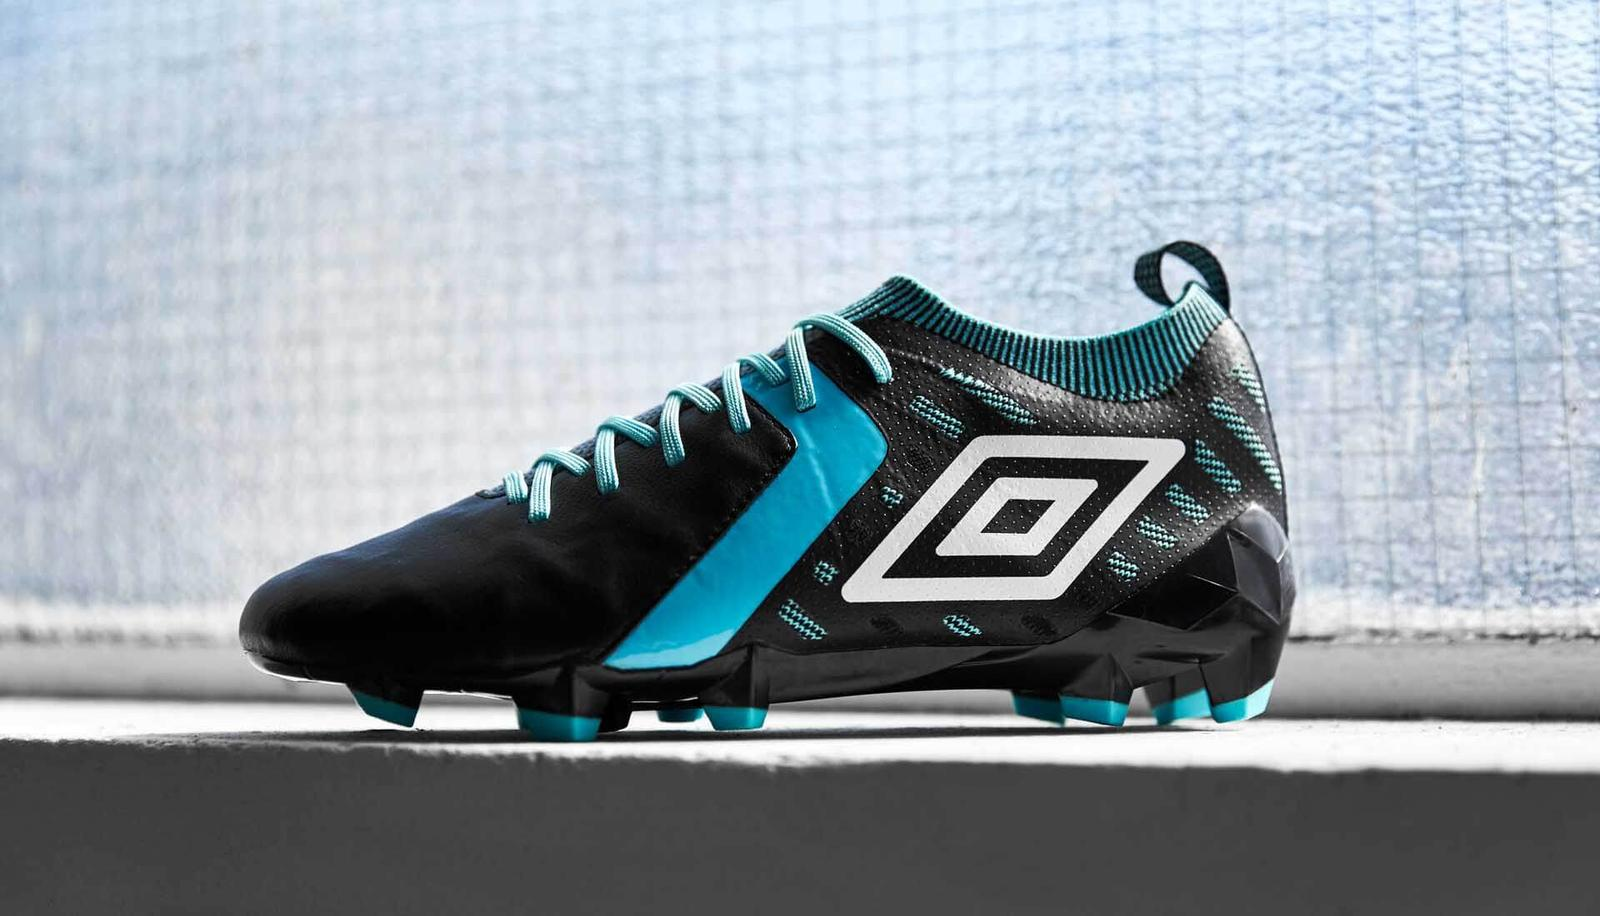 a921f4857d934 First Laceless Leather Umbro Boots - All-New Umbro Medusae 3 Elite ...